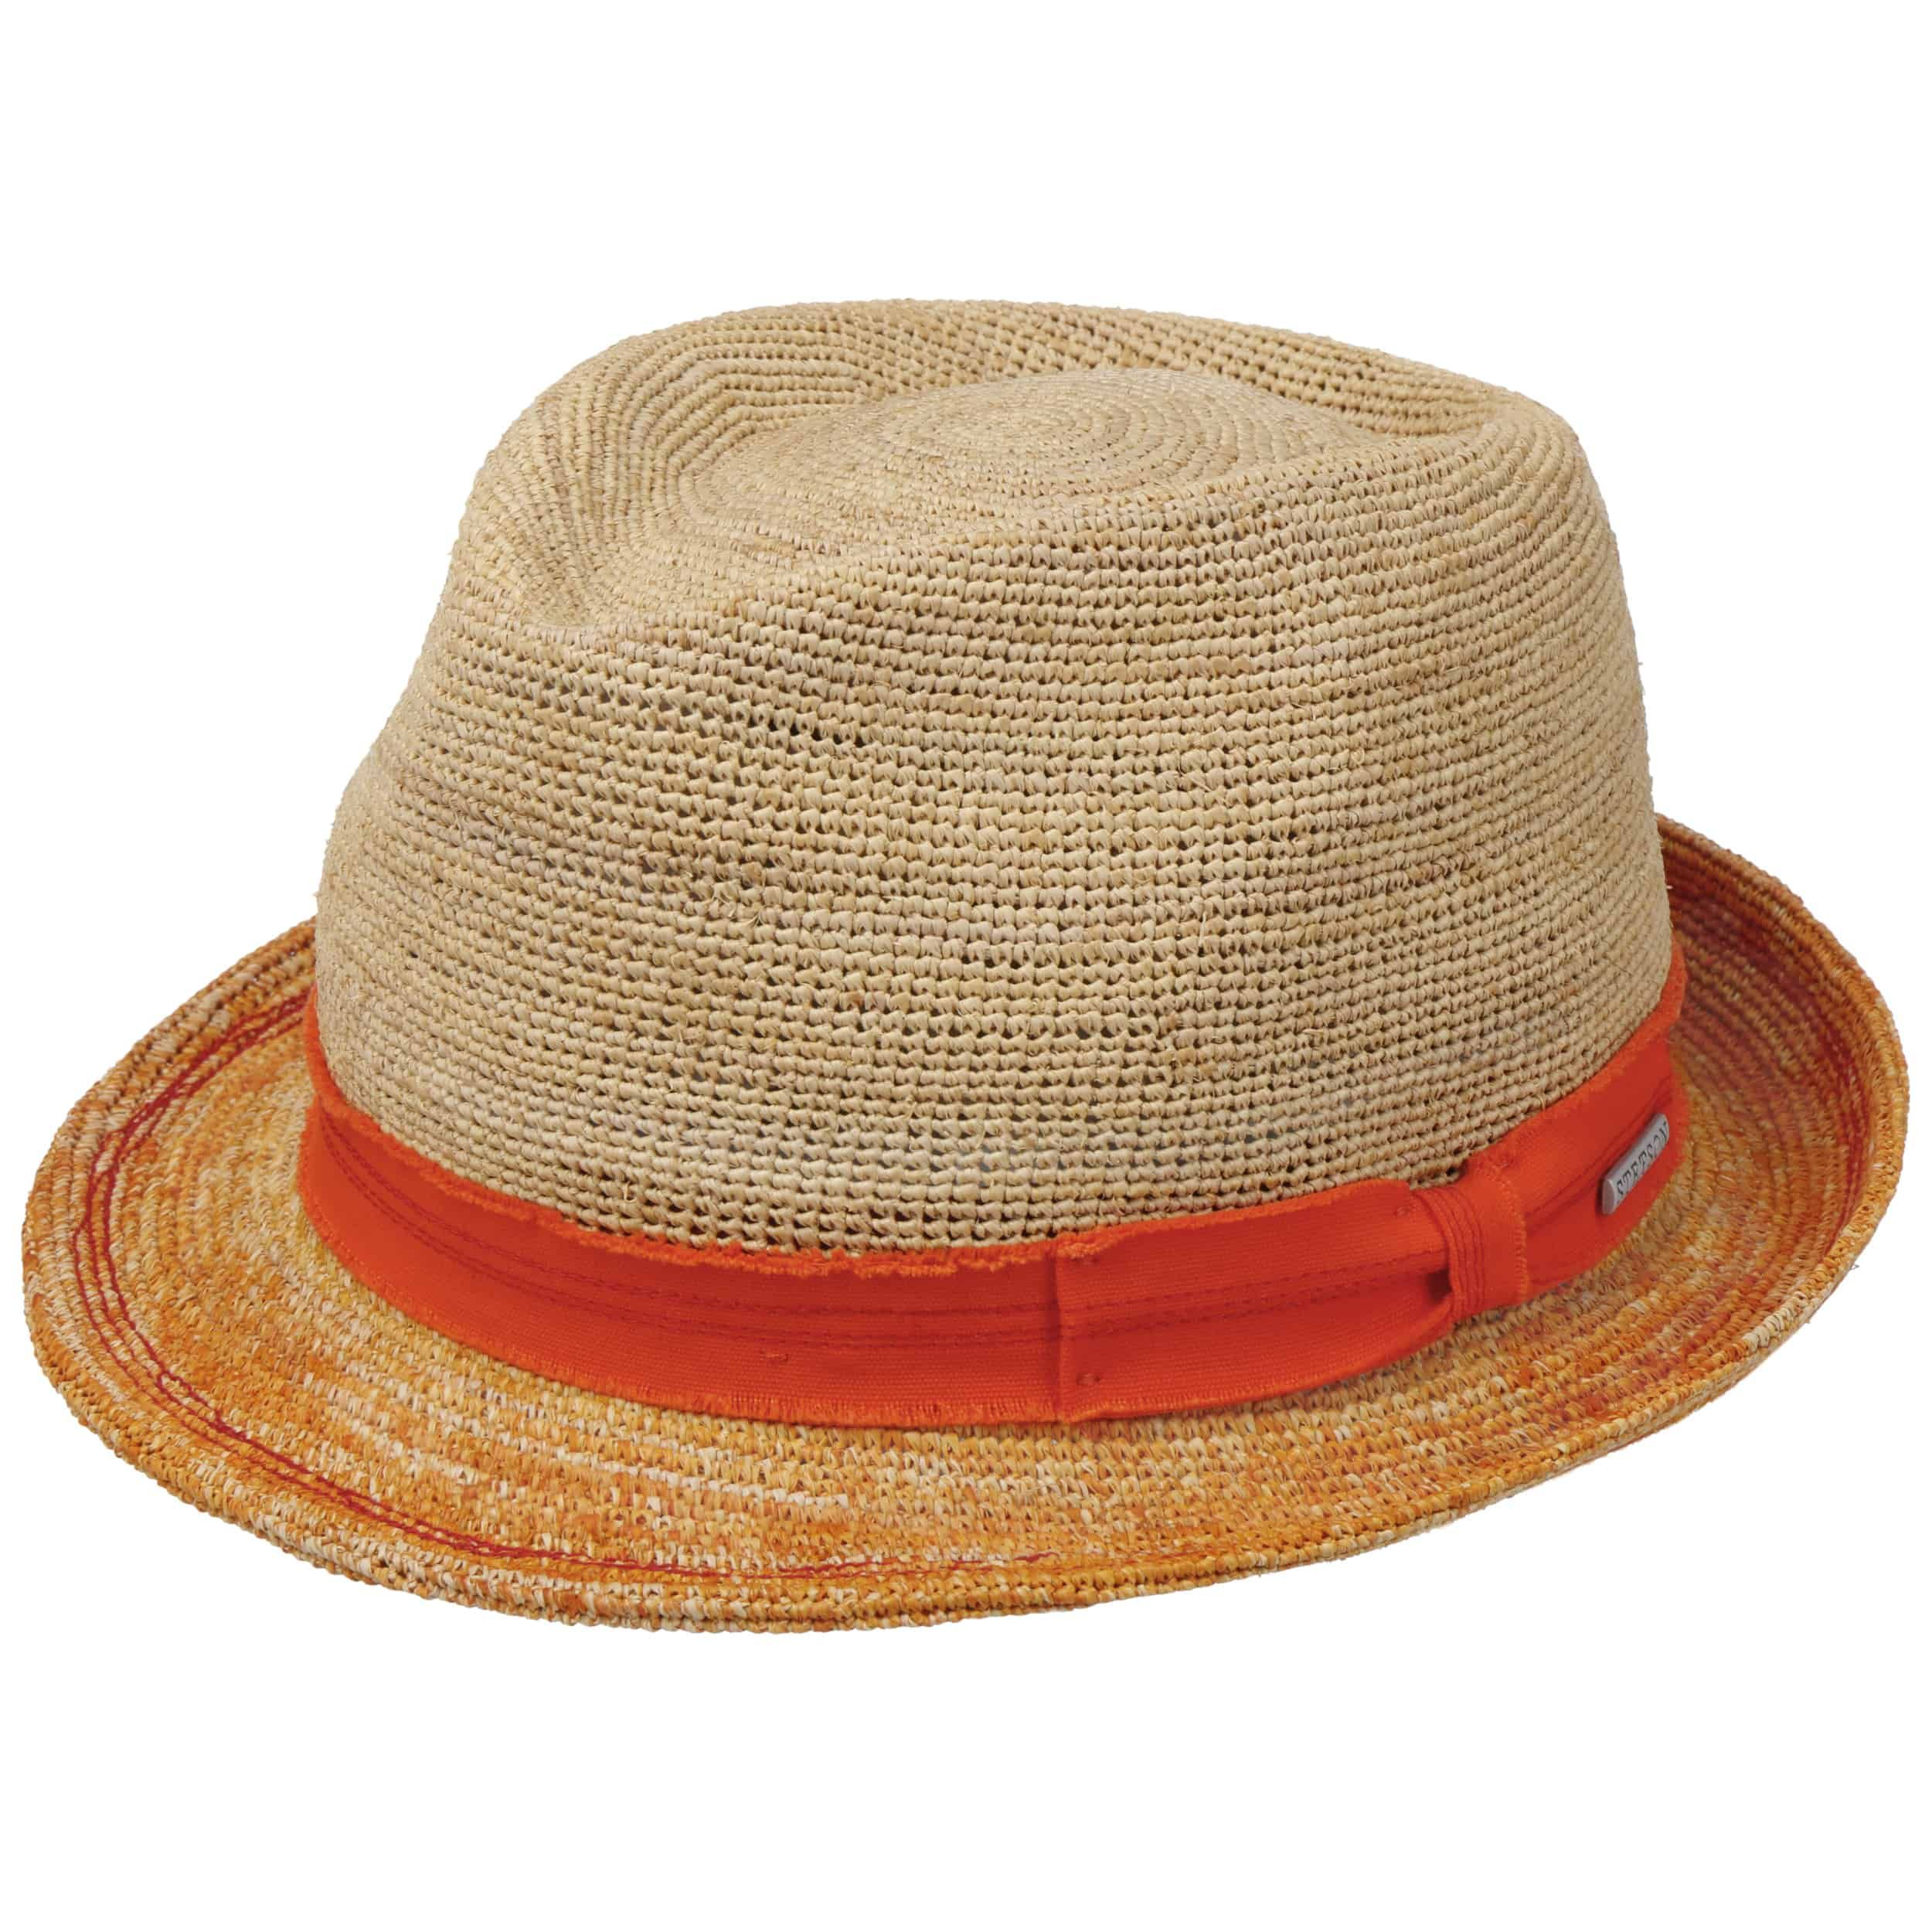 Crochet Trilby Strohhut orange